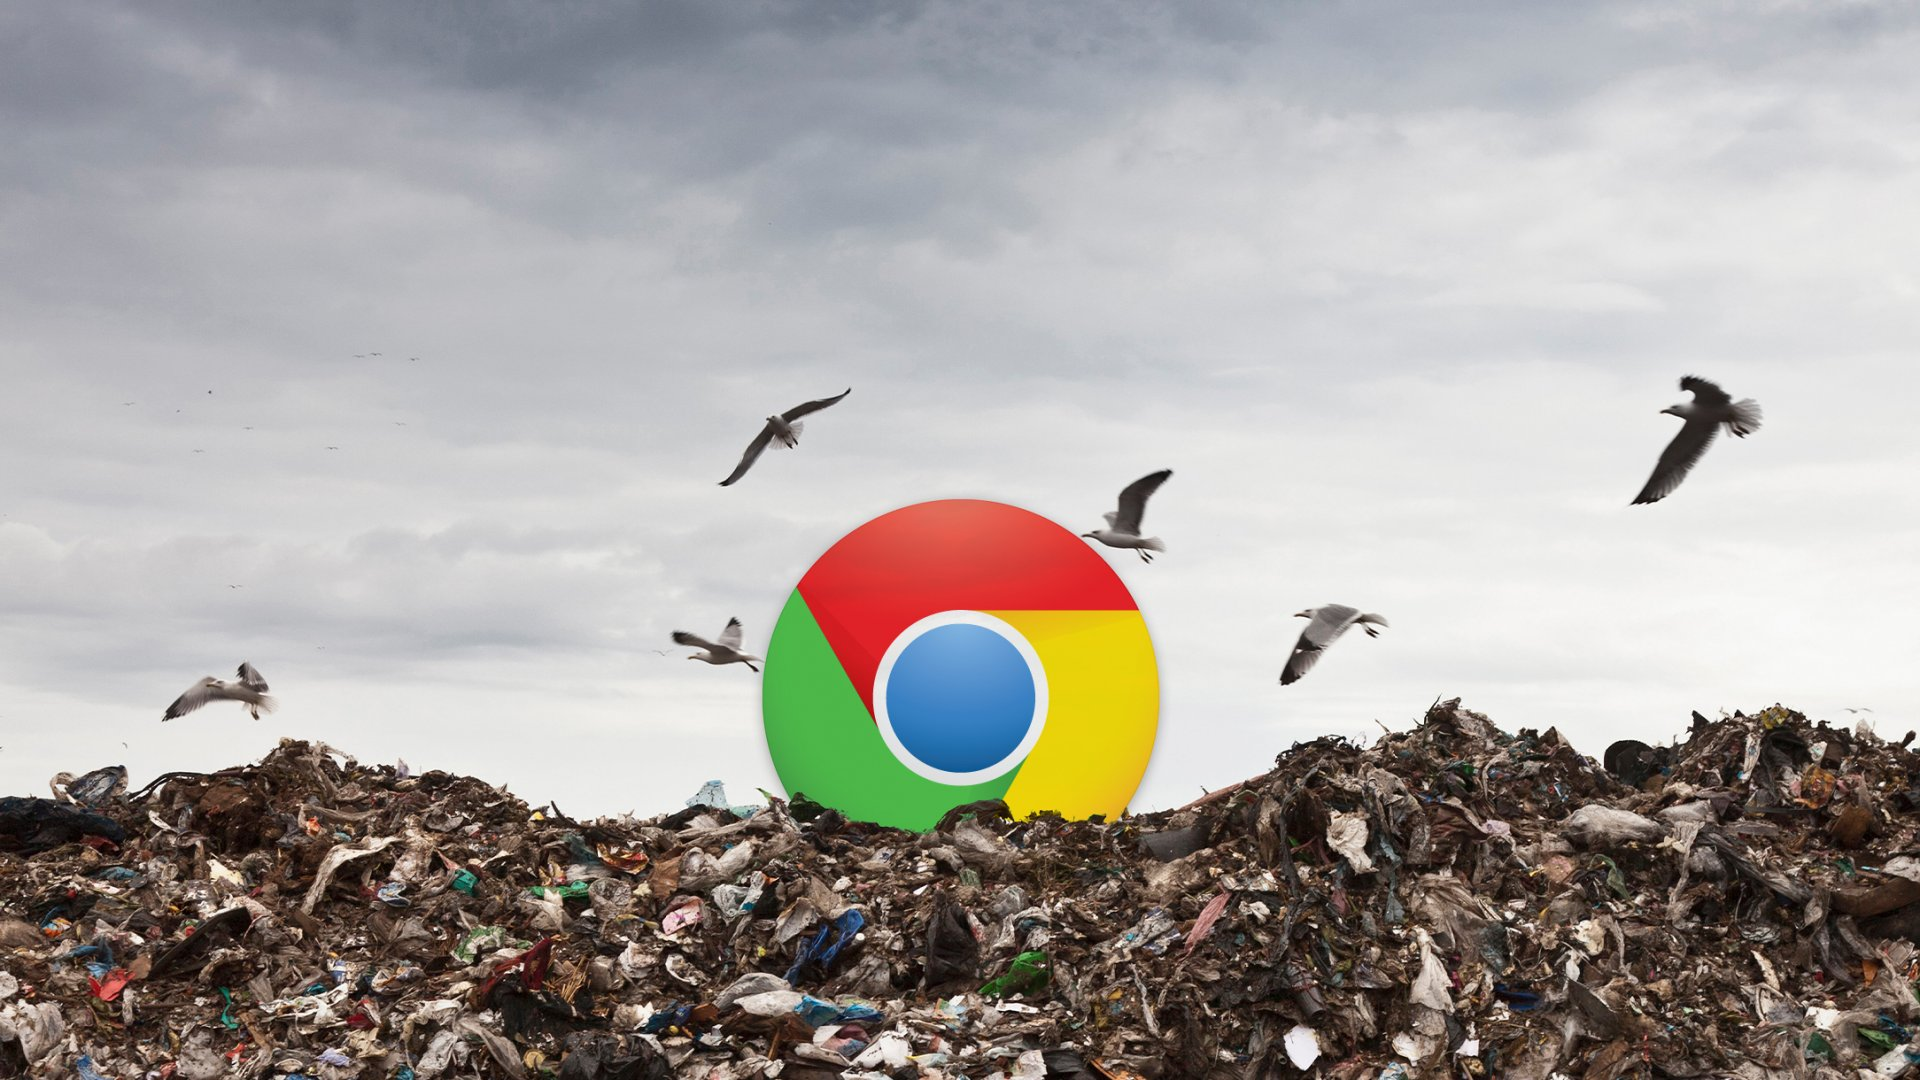 Chrome Has Owned the Web for Years. The Next Version of macOS Could Change That